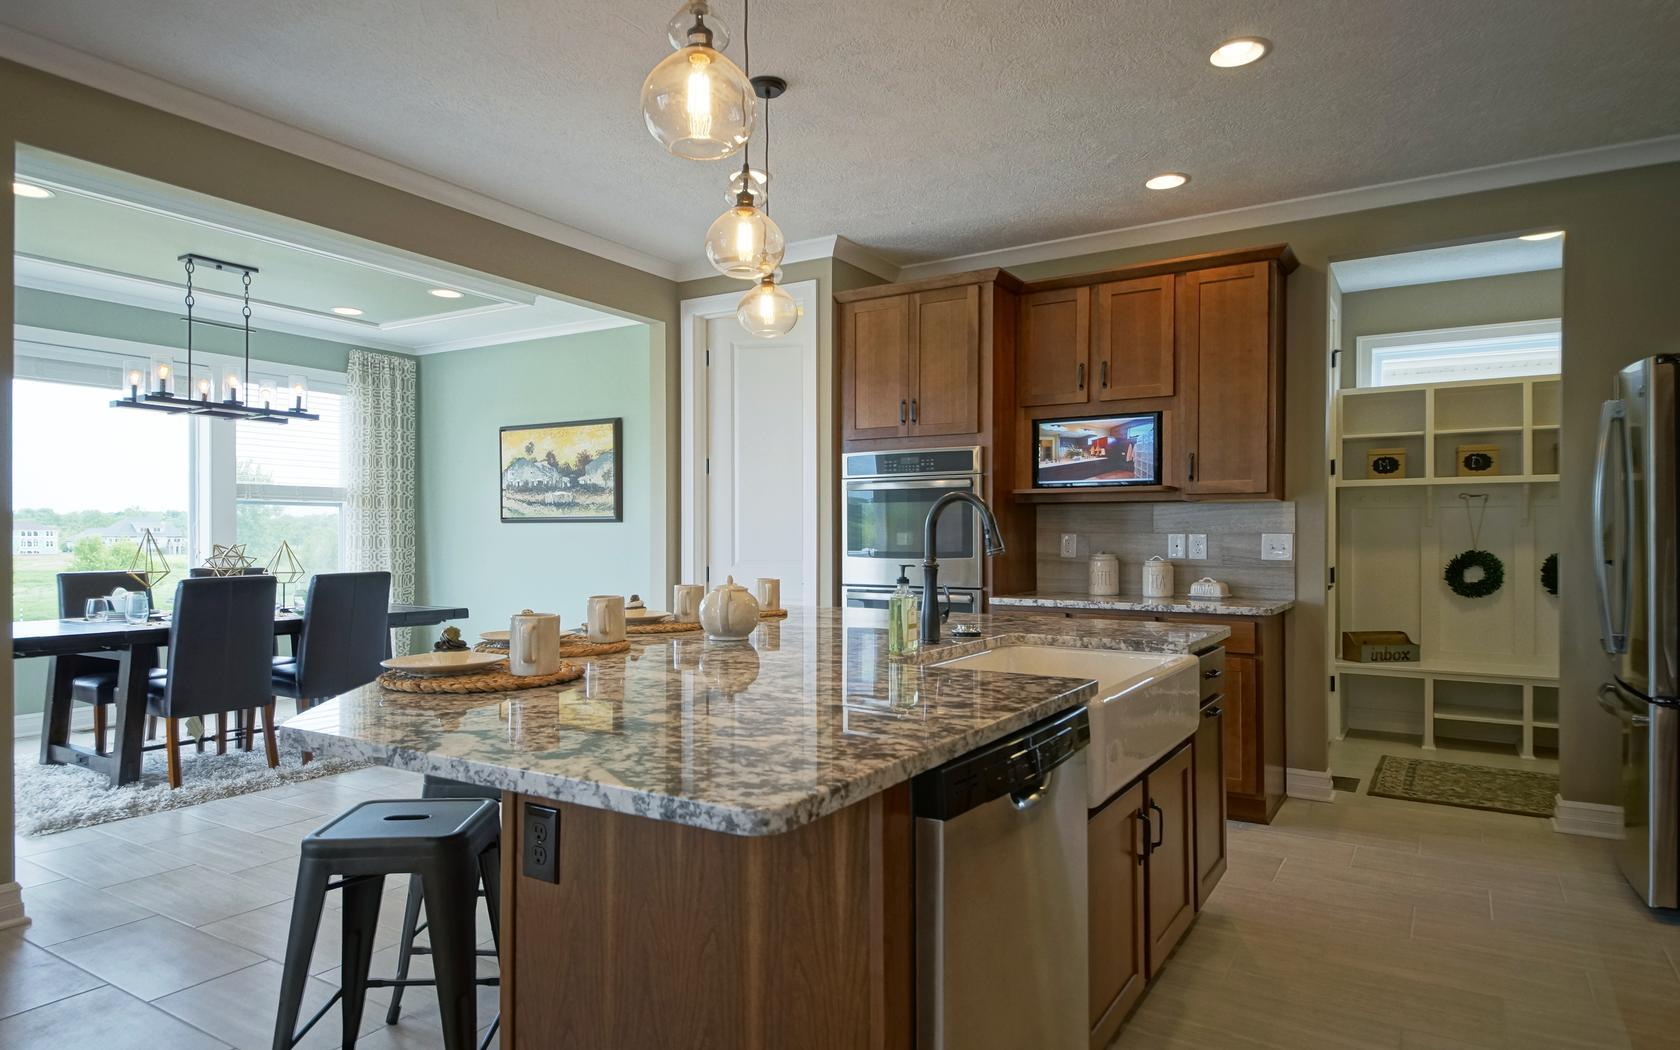 Kitchen featured in the Prescott By Mayberry Homes in Lansing, MI